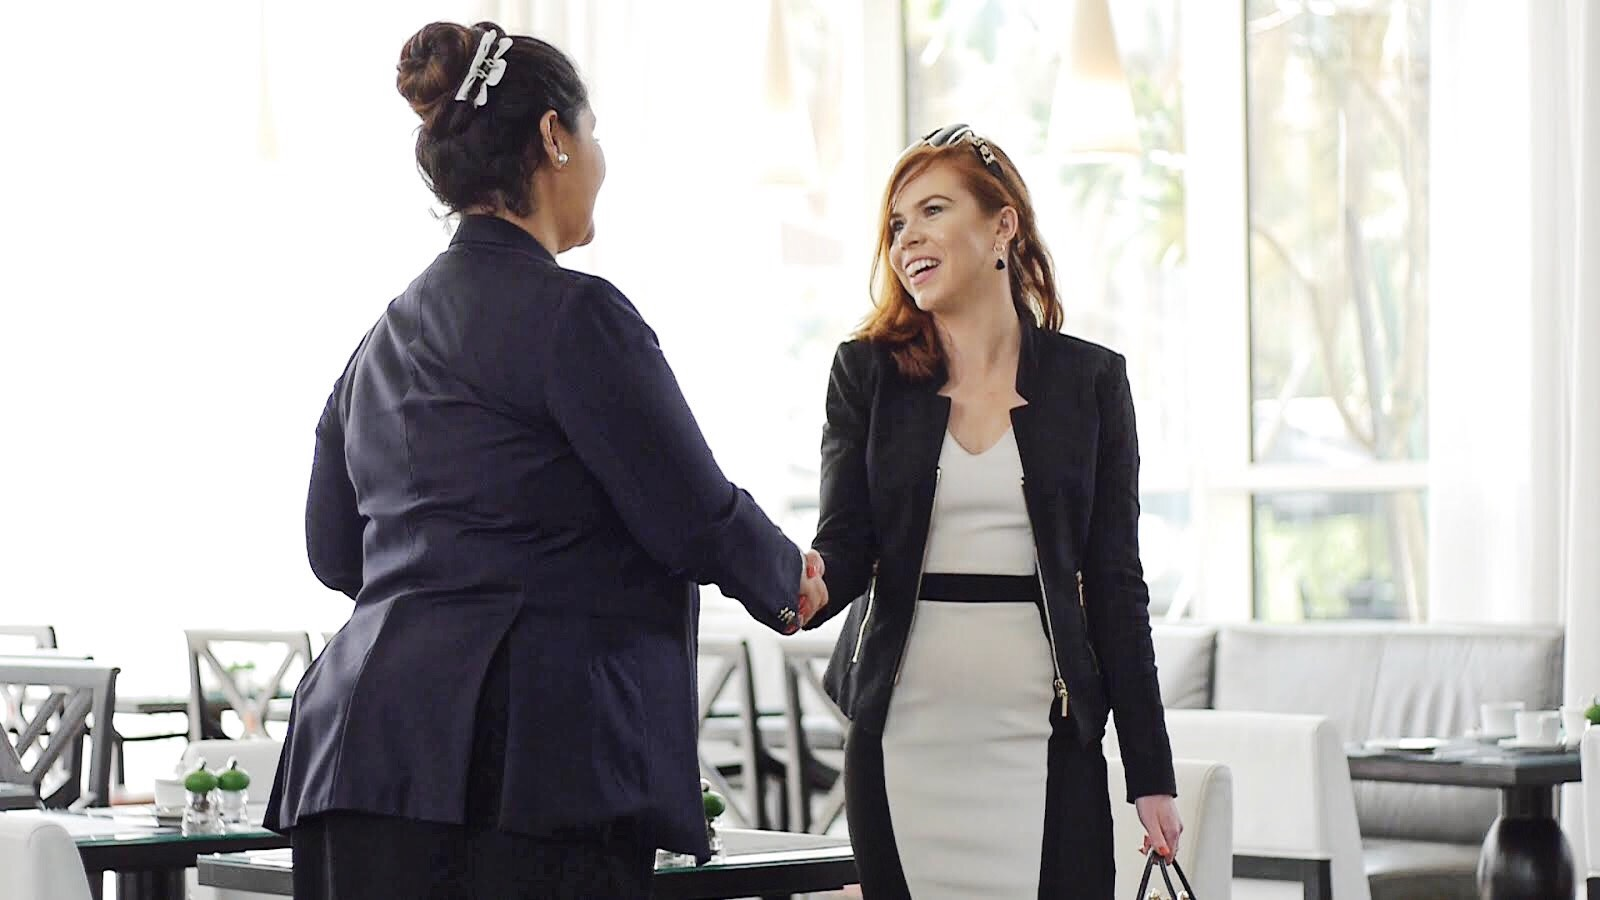 how to conduct a business meeting - briar Prestidge - deals in high heels